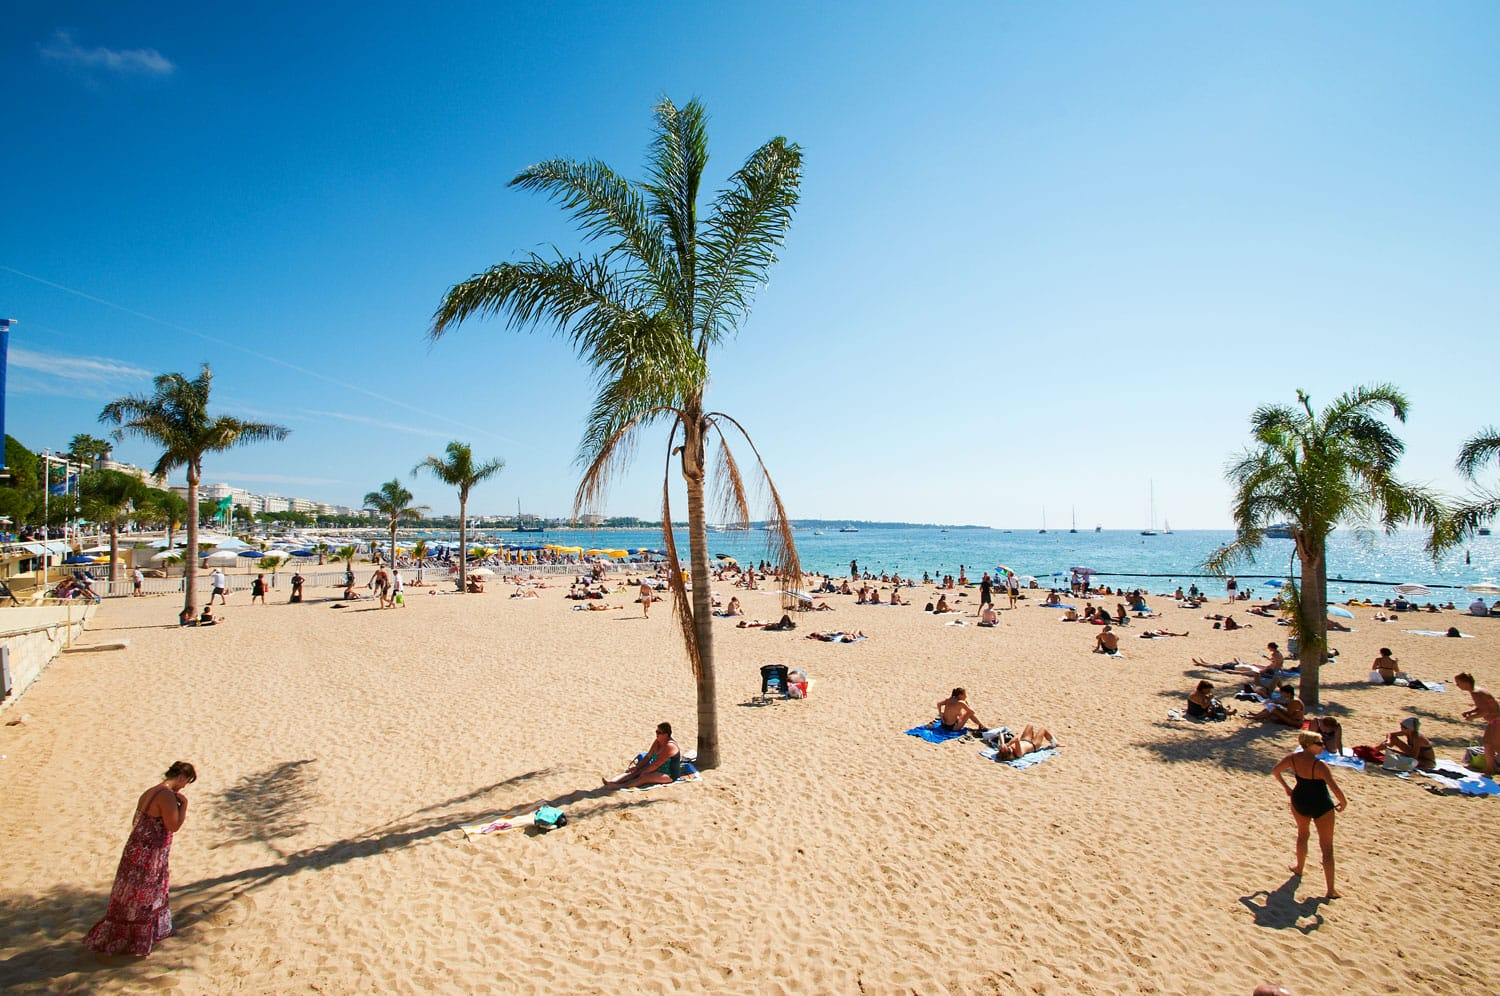 Barcelona Beach in Spain